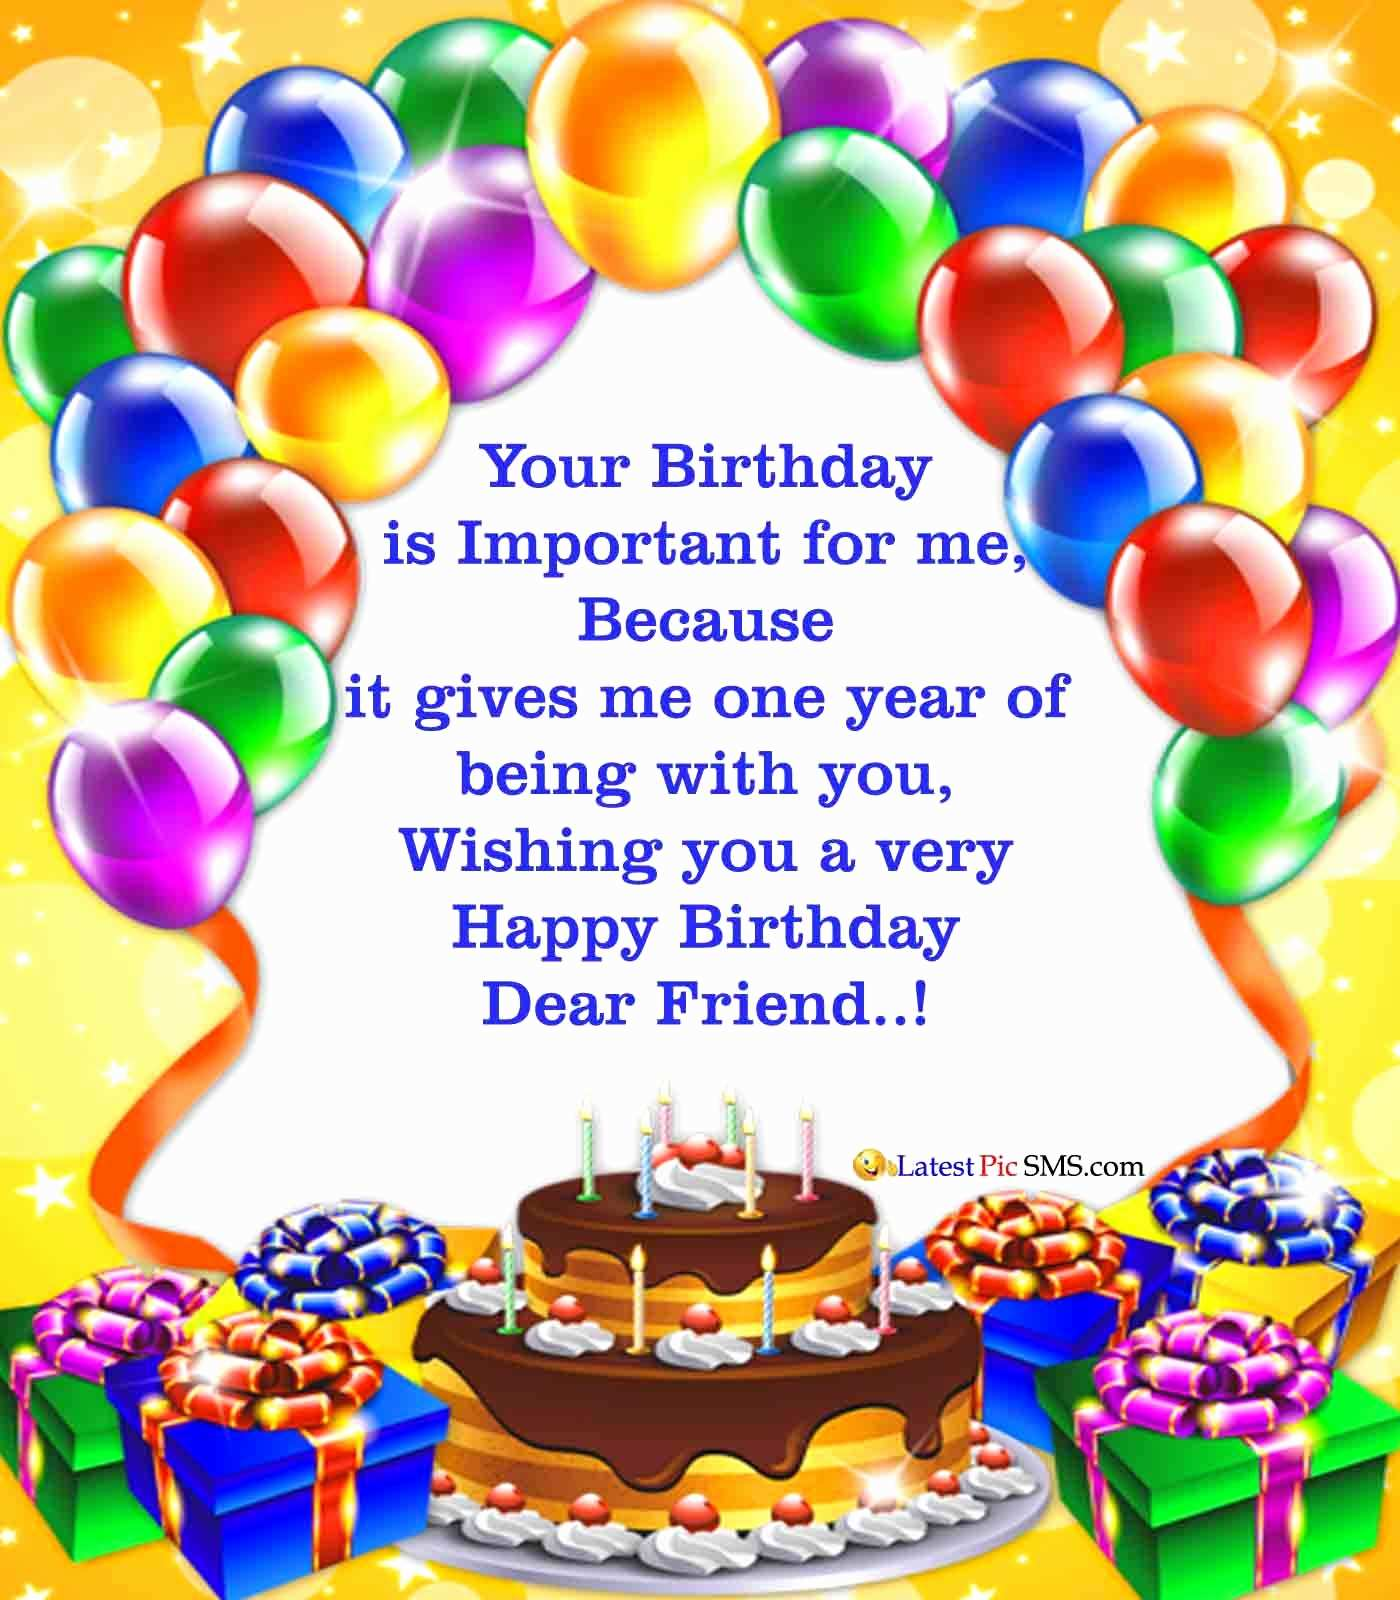 birthday message for best friend in hindi ; birthday-wishes-for-a-good-friend-lovely-top-happy-birthday-wishes-to-best-friend-in-hindi-mccarthy-travels-of-birthday-wishes-for-a-good-friend